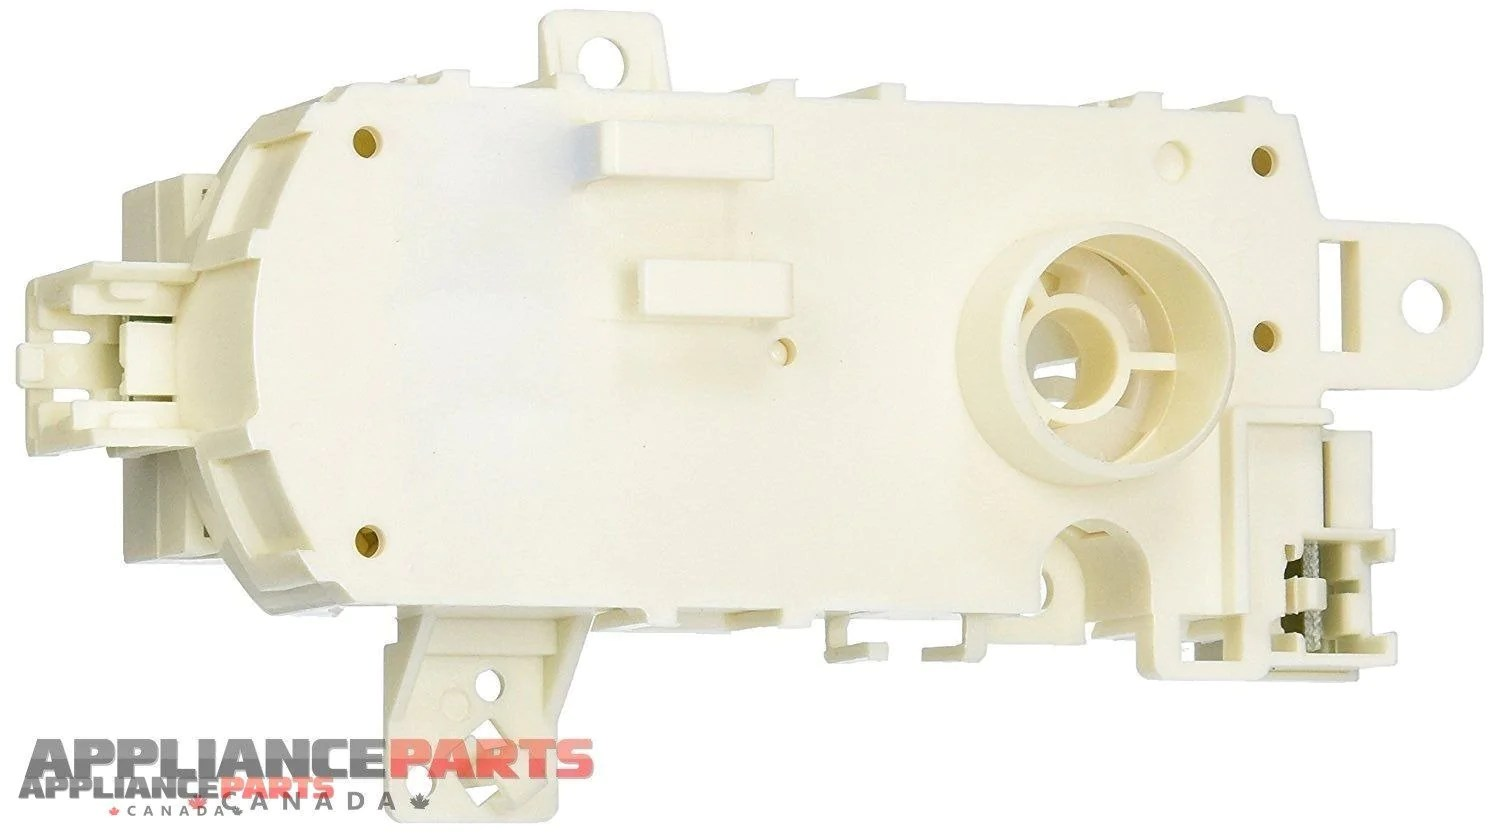 Whirlpool Appliances Canada Whirlpool W10537869 Drive Motor